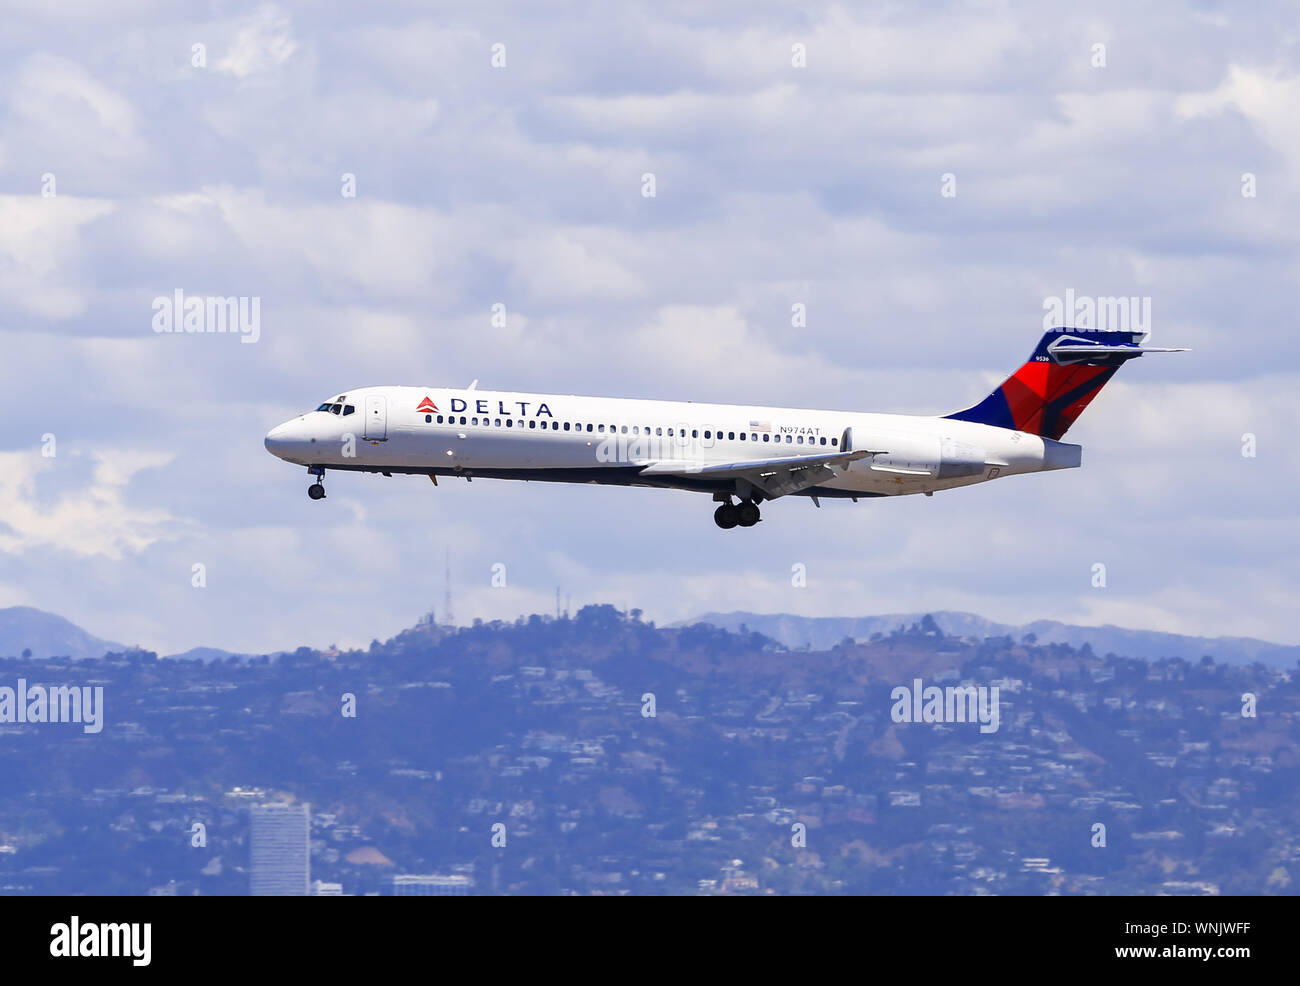 Los Angeles, California, USA - May 22, 2019: A Boeing 717 from Delta Airlines lands at the Los Angeles International Airport (LAX). In the background Stock Photo